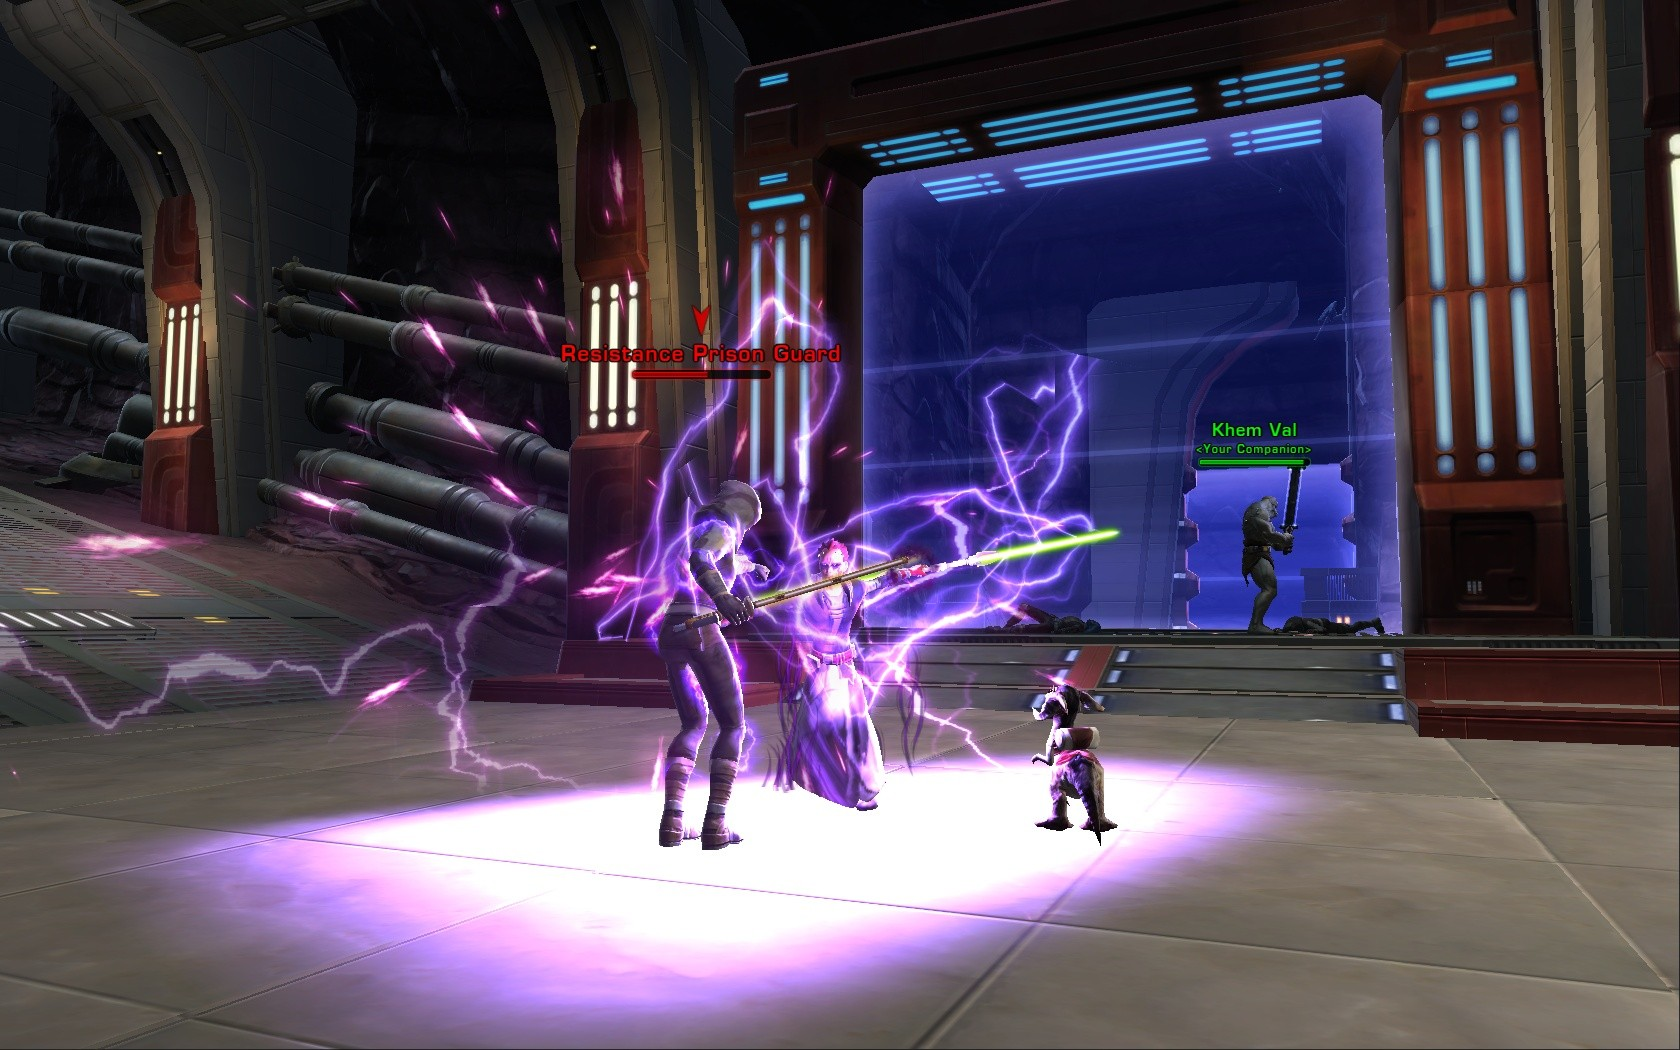 Star Wars: The Old Republic - Ride the lightning!